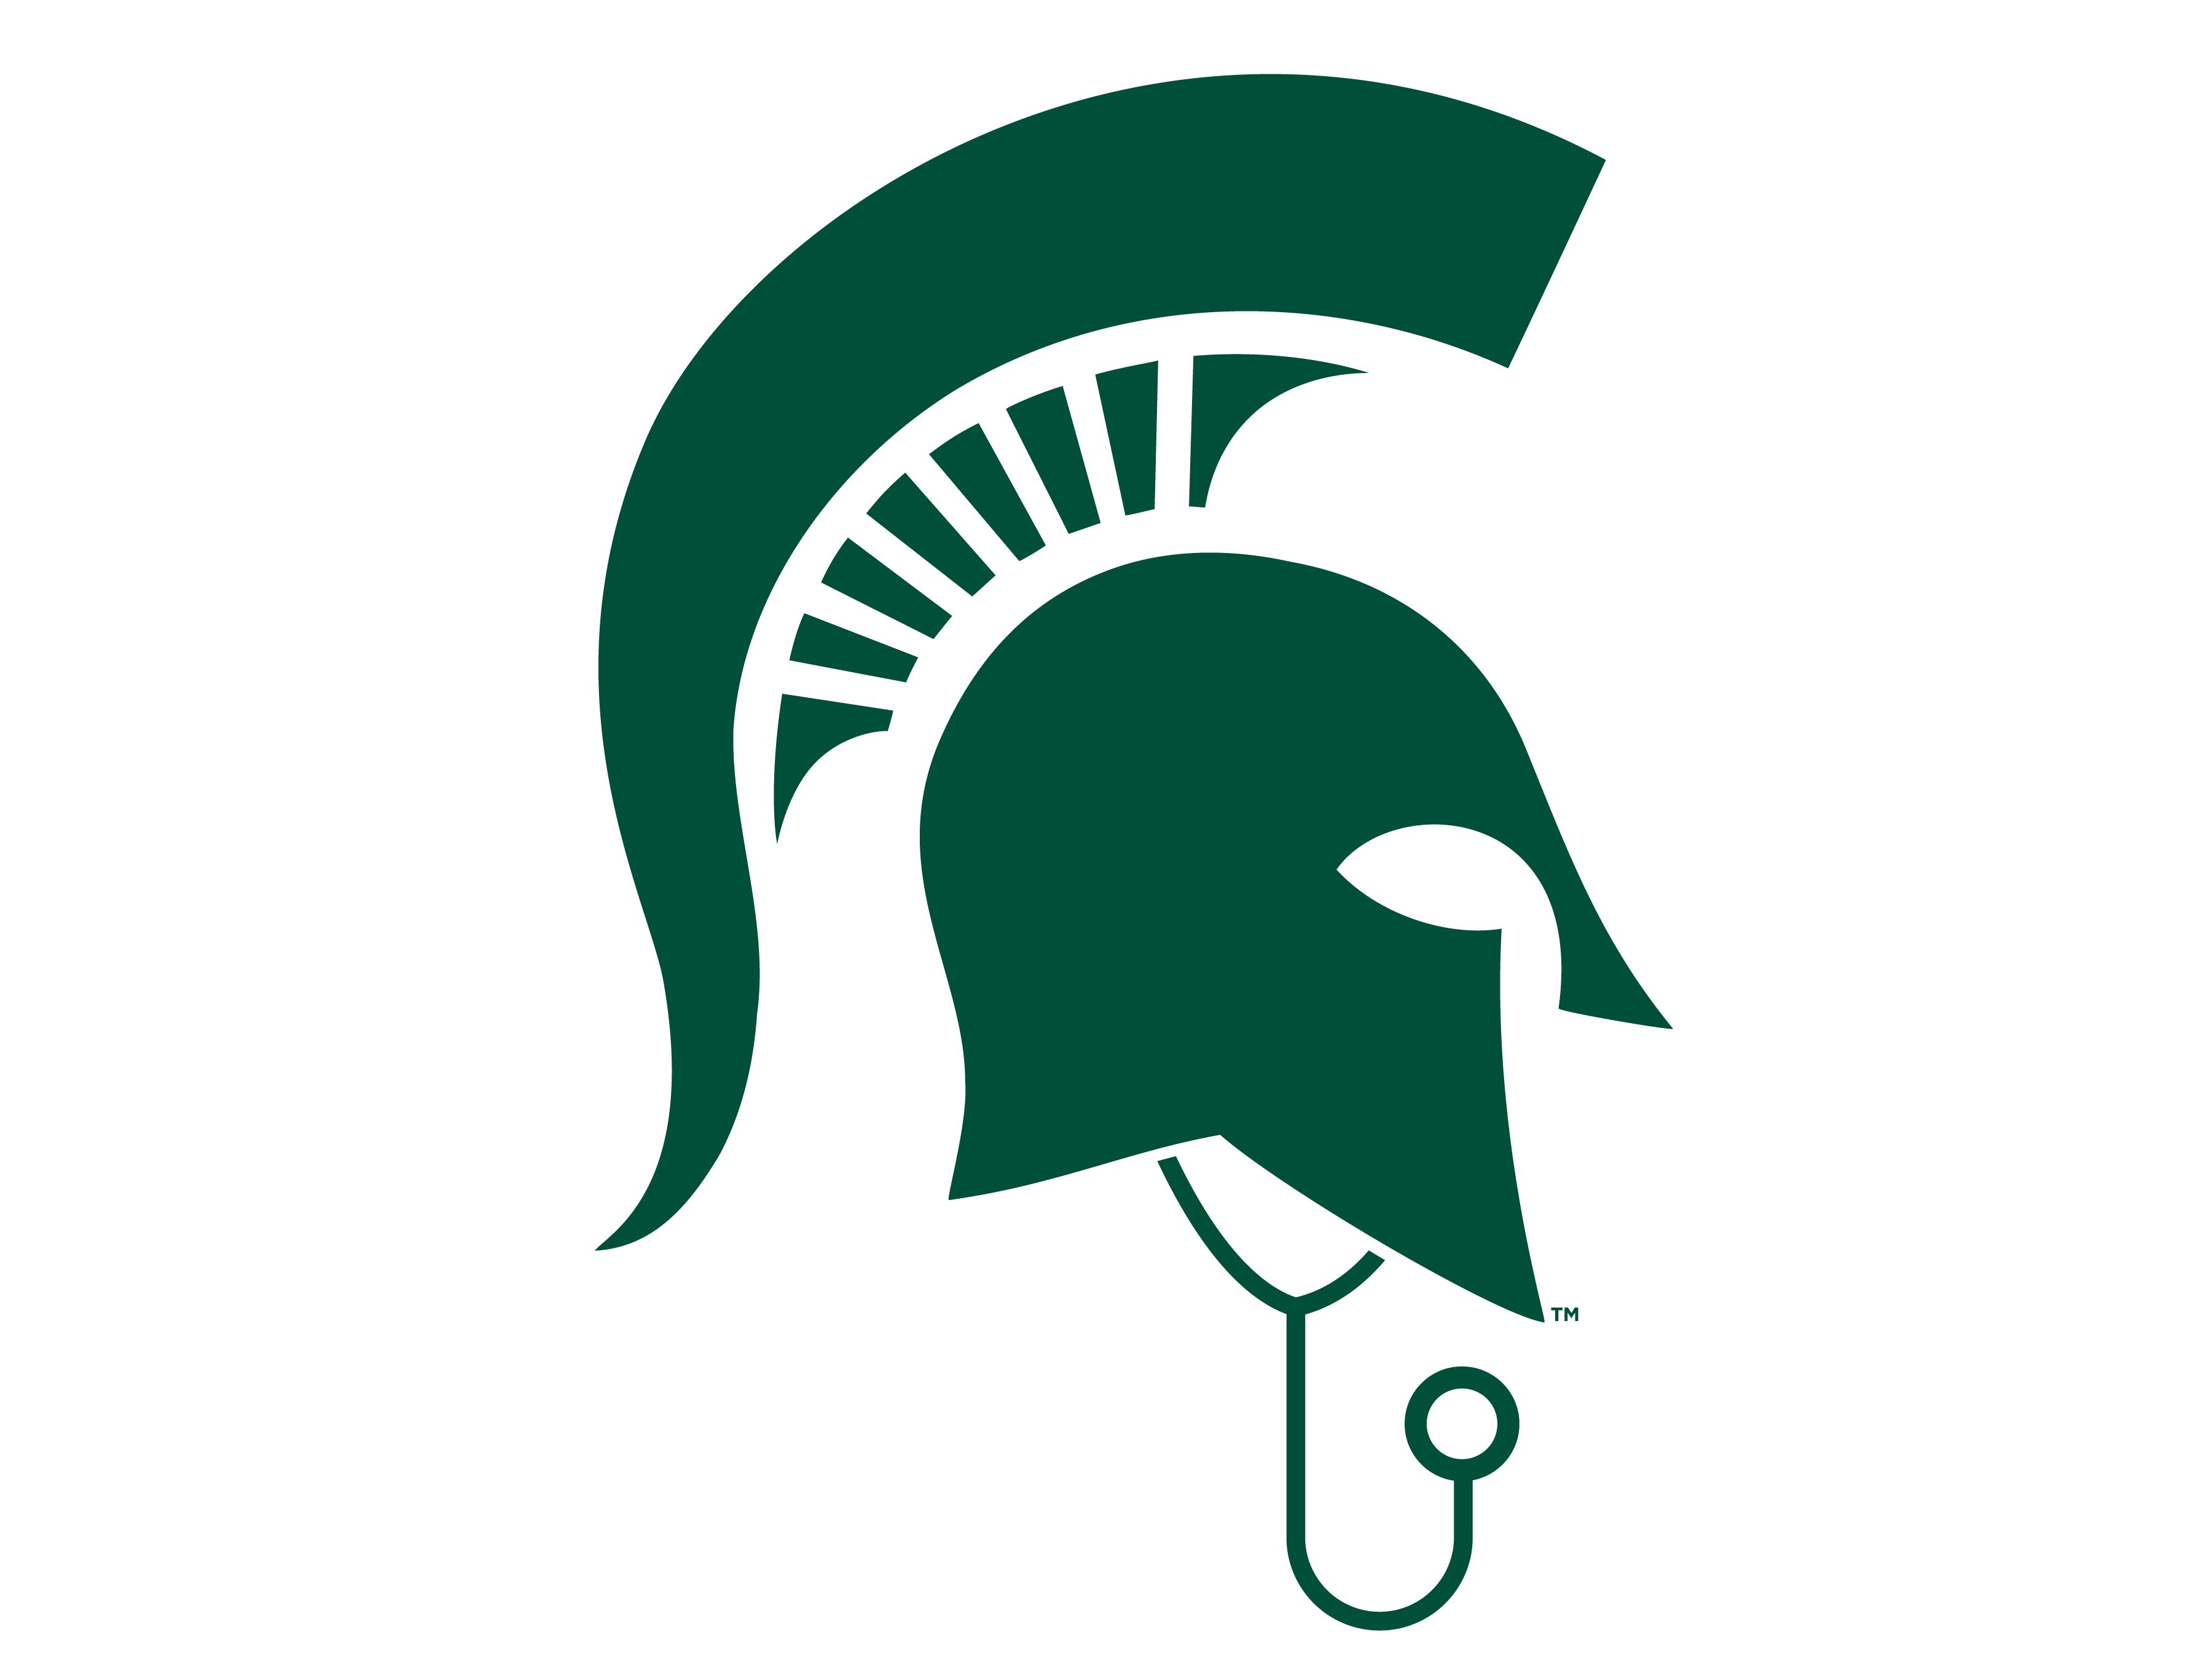 13 best logos images on pinterest extra credit created by and rh pinterest com msu logo images msu logistics